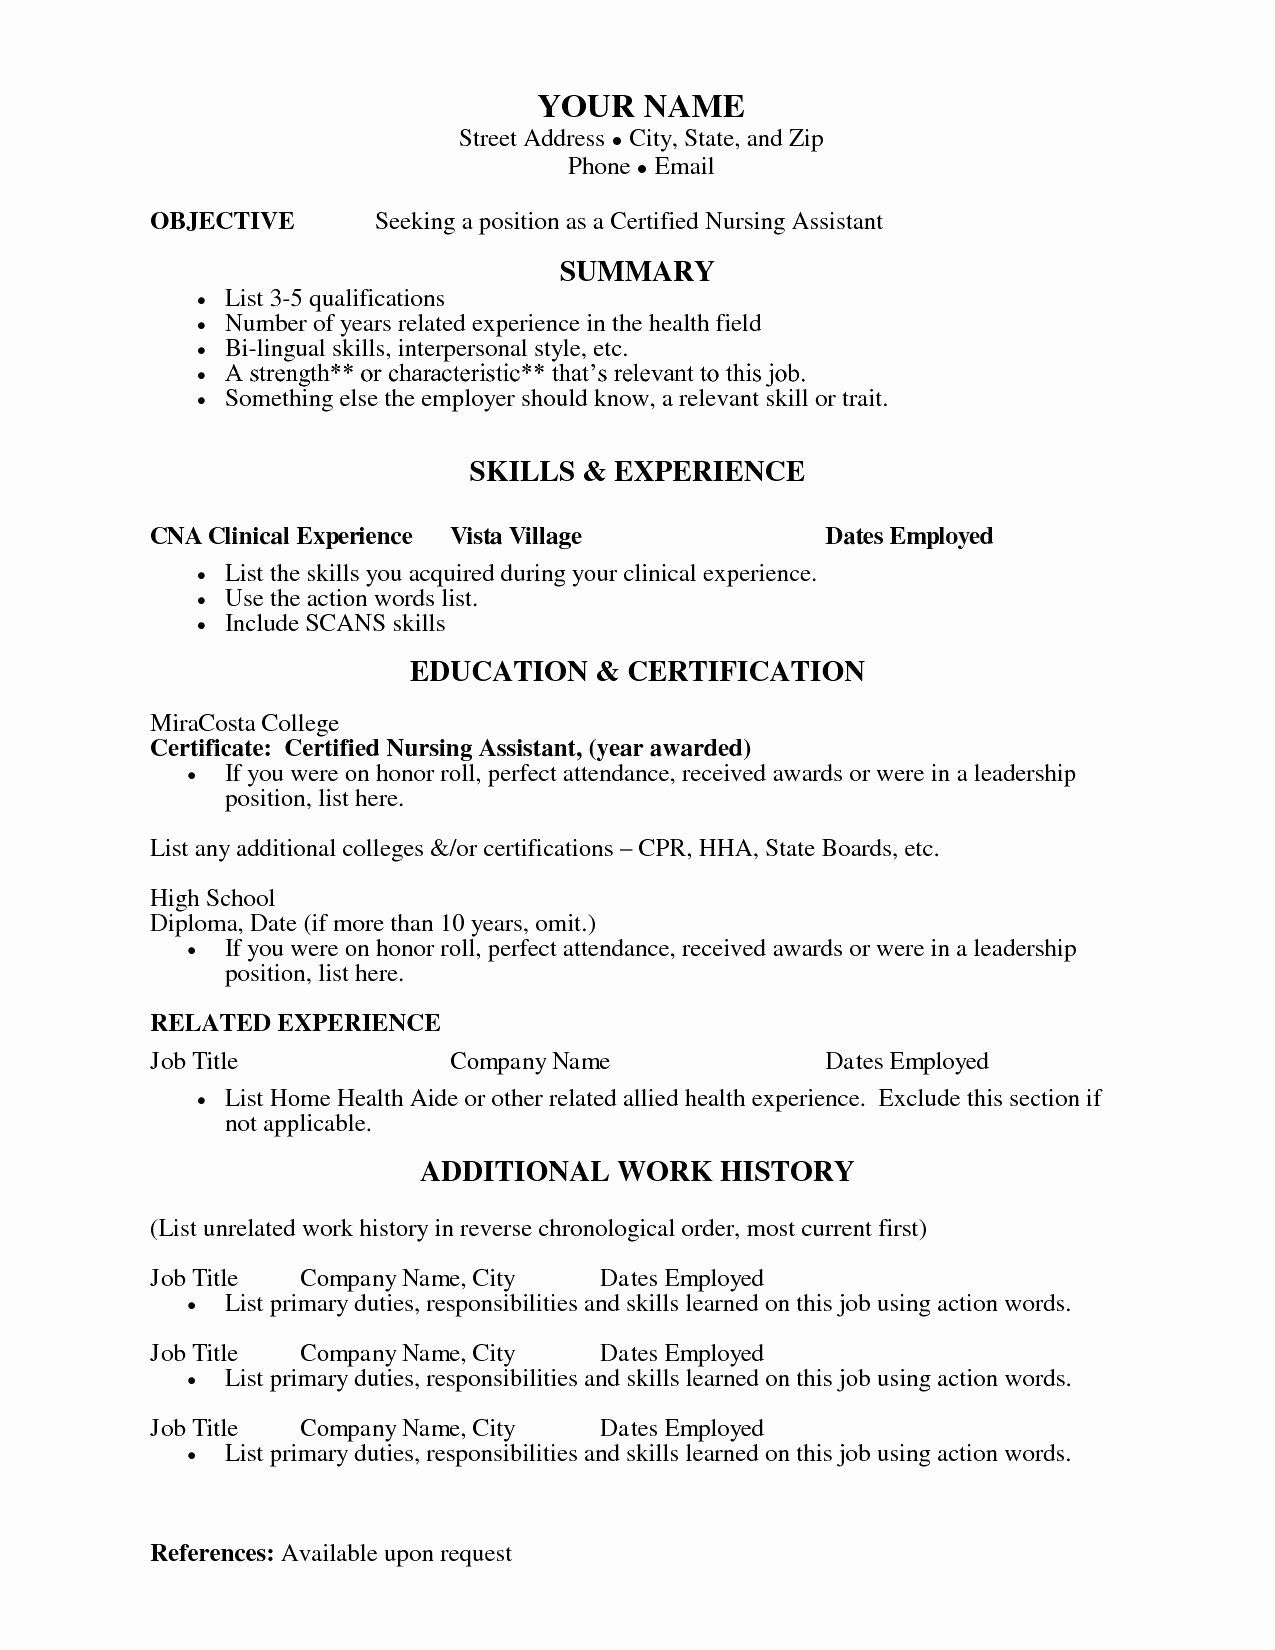 Attendance Certificate Format For Employees Lovely Action Verbs For Resumes And Cover Letters Best Free F Cover Letter For Resume Resume Skills Resume Examples